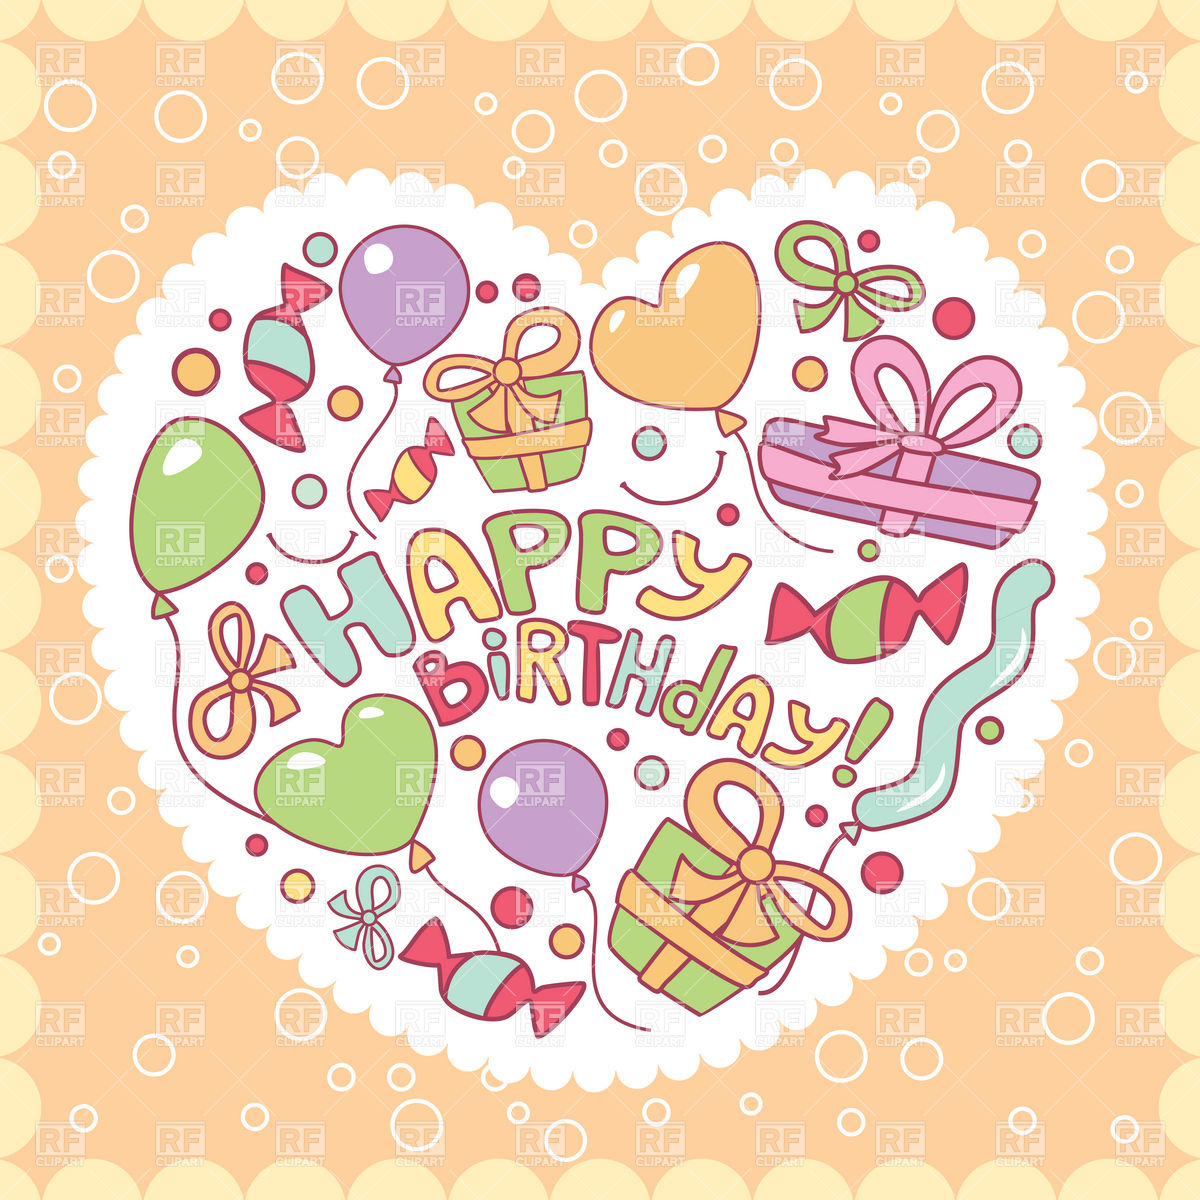 birthday greetings clipart ; happy-birthday-greeting-card-with-gifts-and-balloons-Download-Royalty-free-Vector-File-EPS-40295